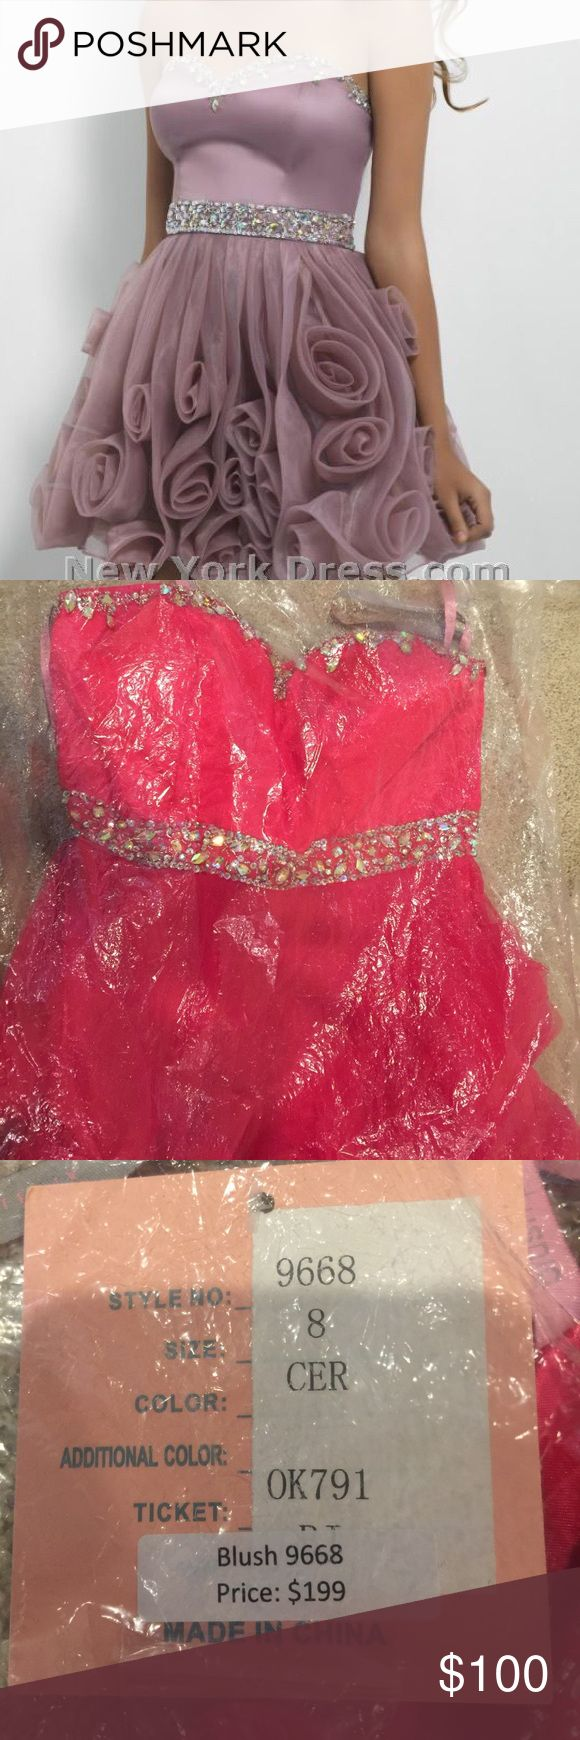 Pink Blush Prom Dress Pink in Color. Style # 9668. Size 8 Blush Prom Dresses